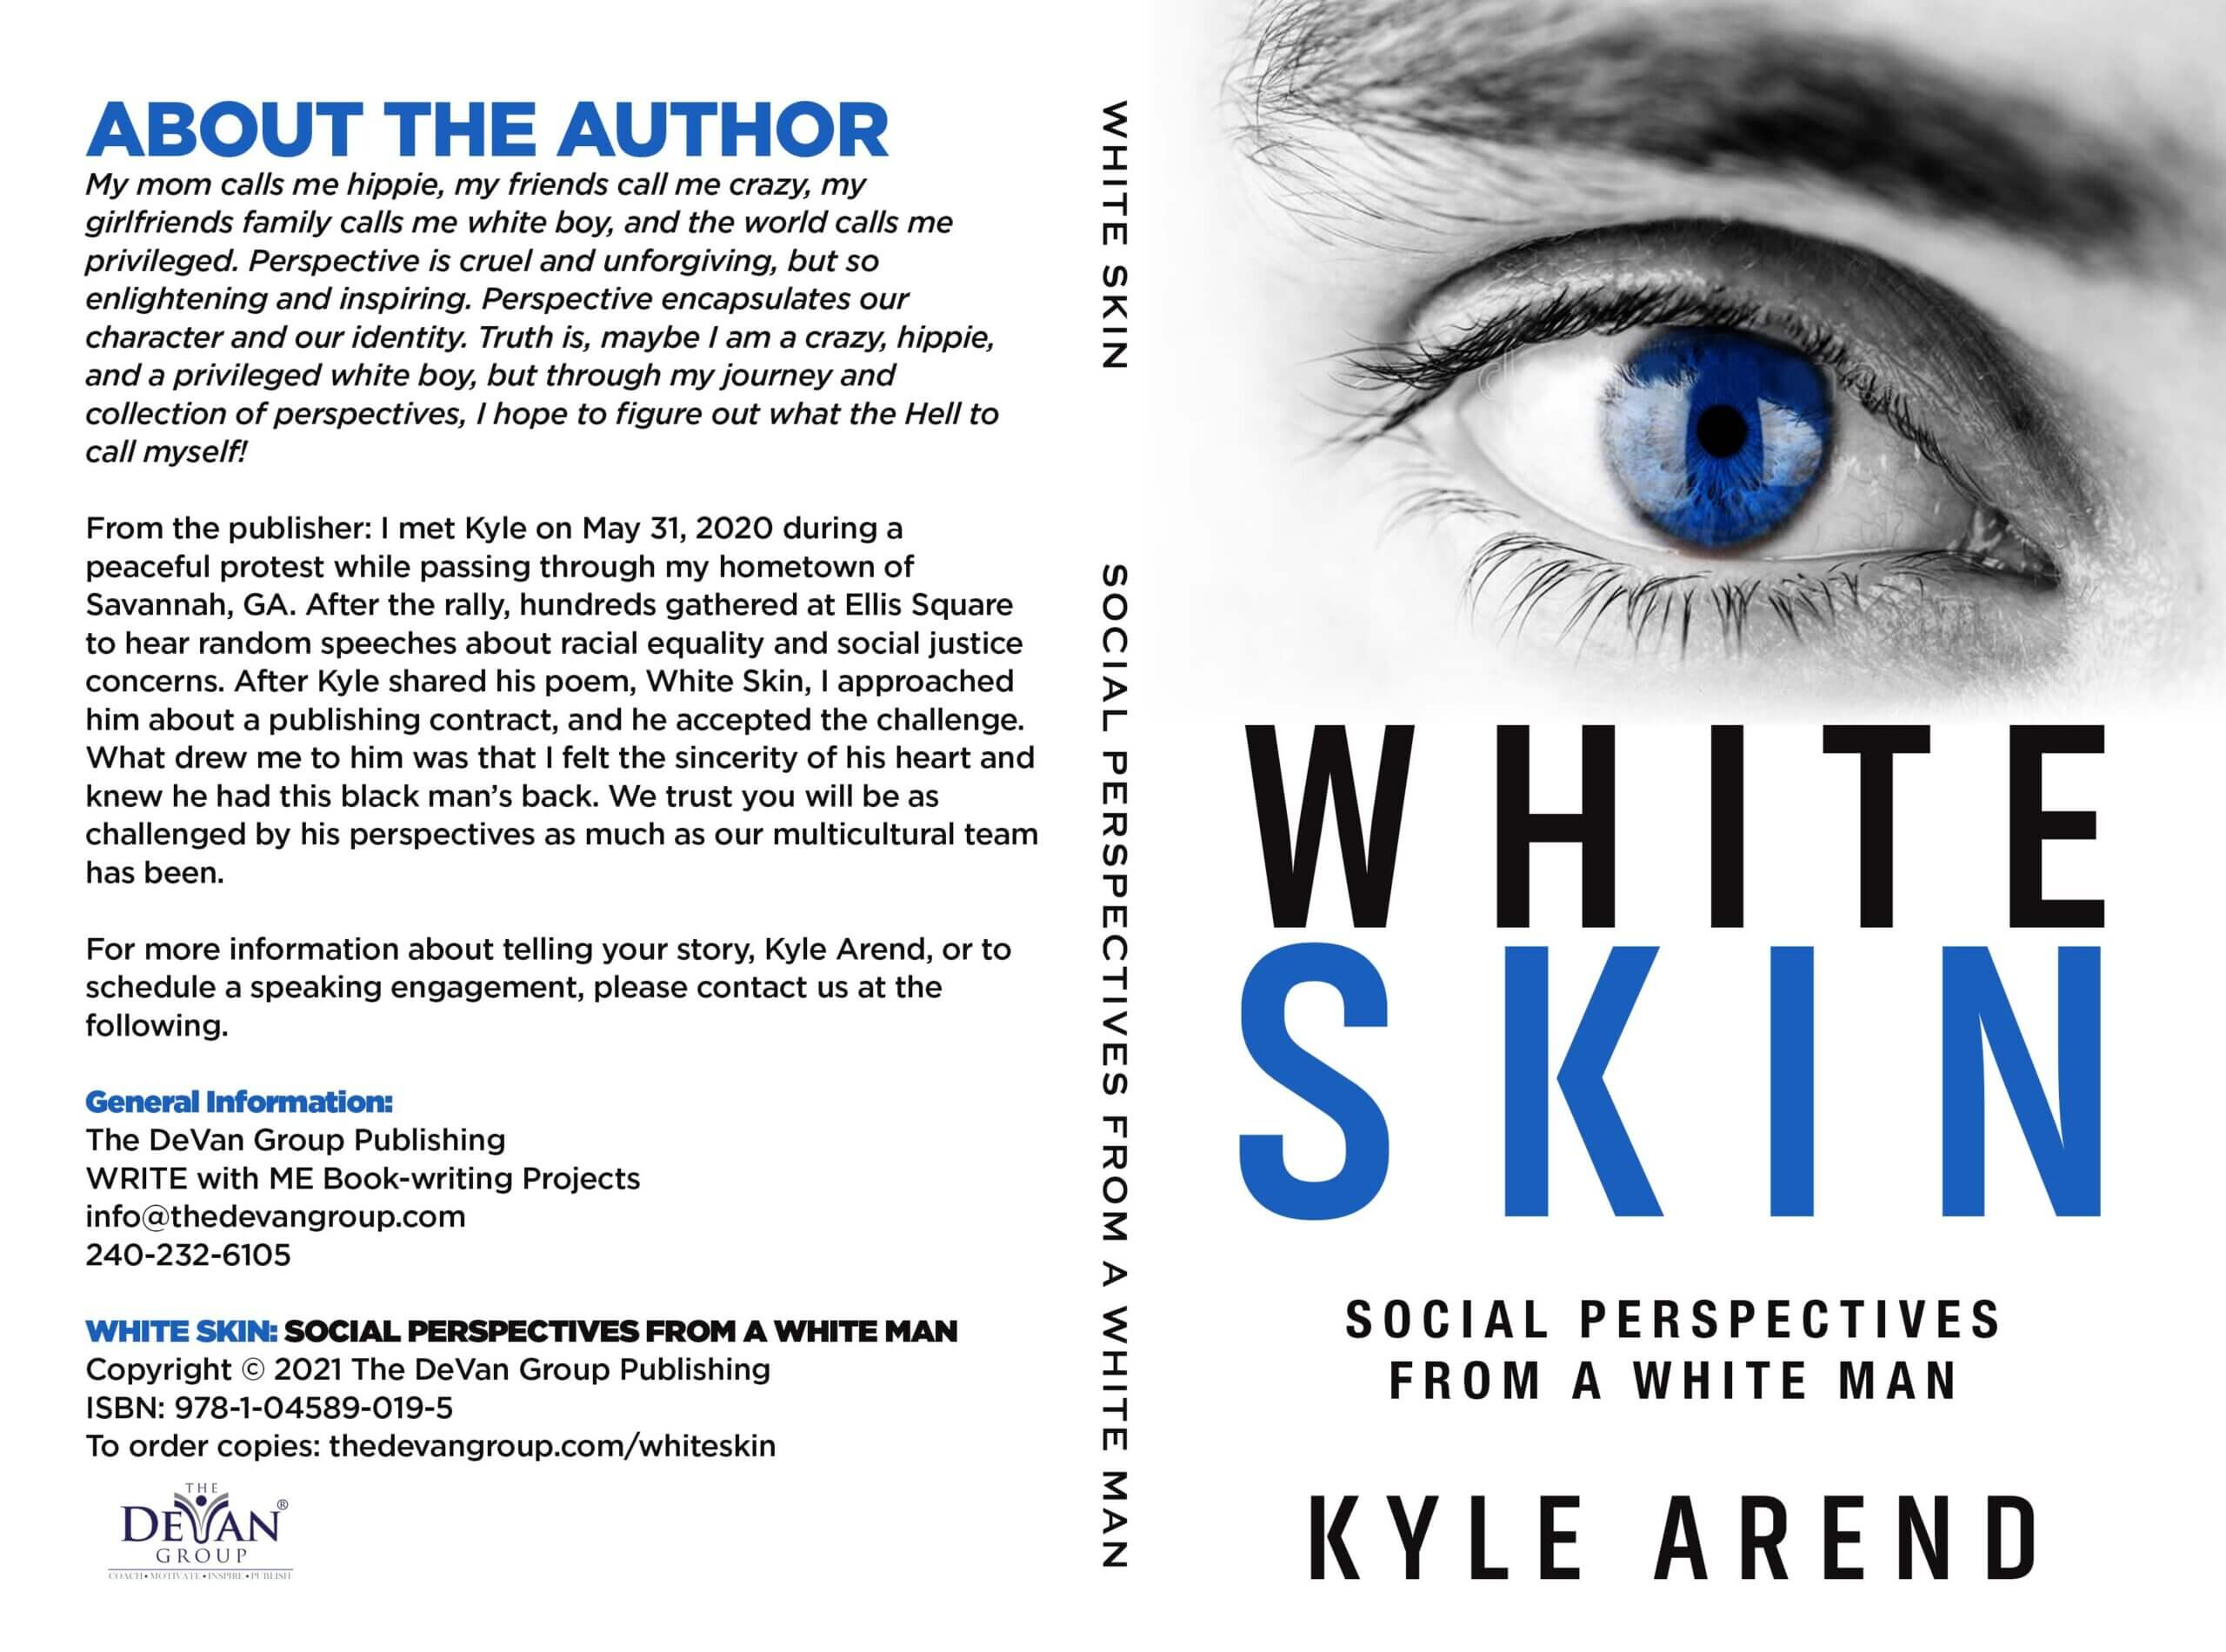 White Skin: Social Perspectives from a White Man